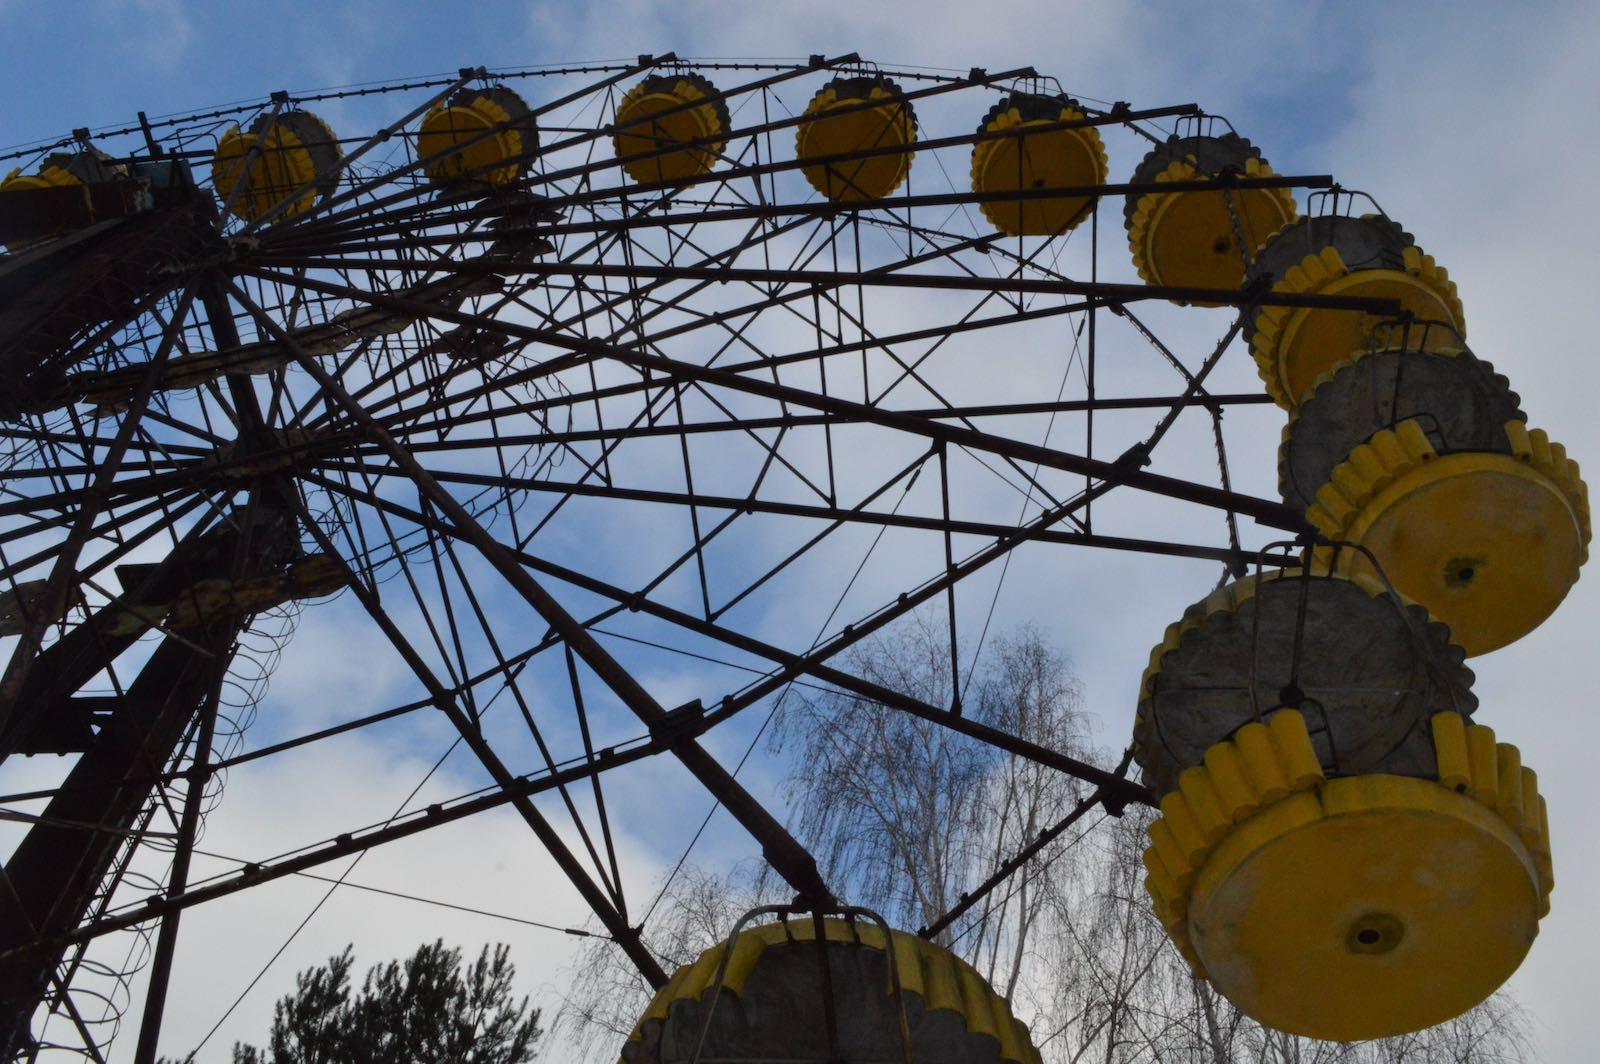 The abandoned fairground at Chernobyl (Photo: Ian Bancroft/Flickr)